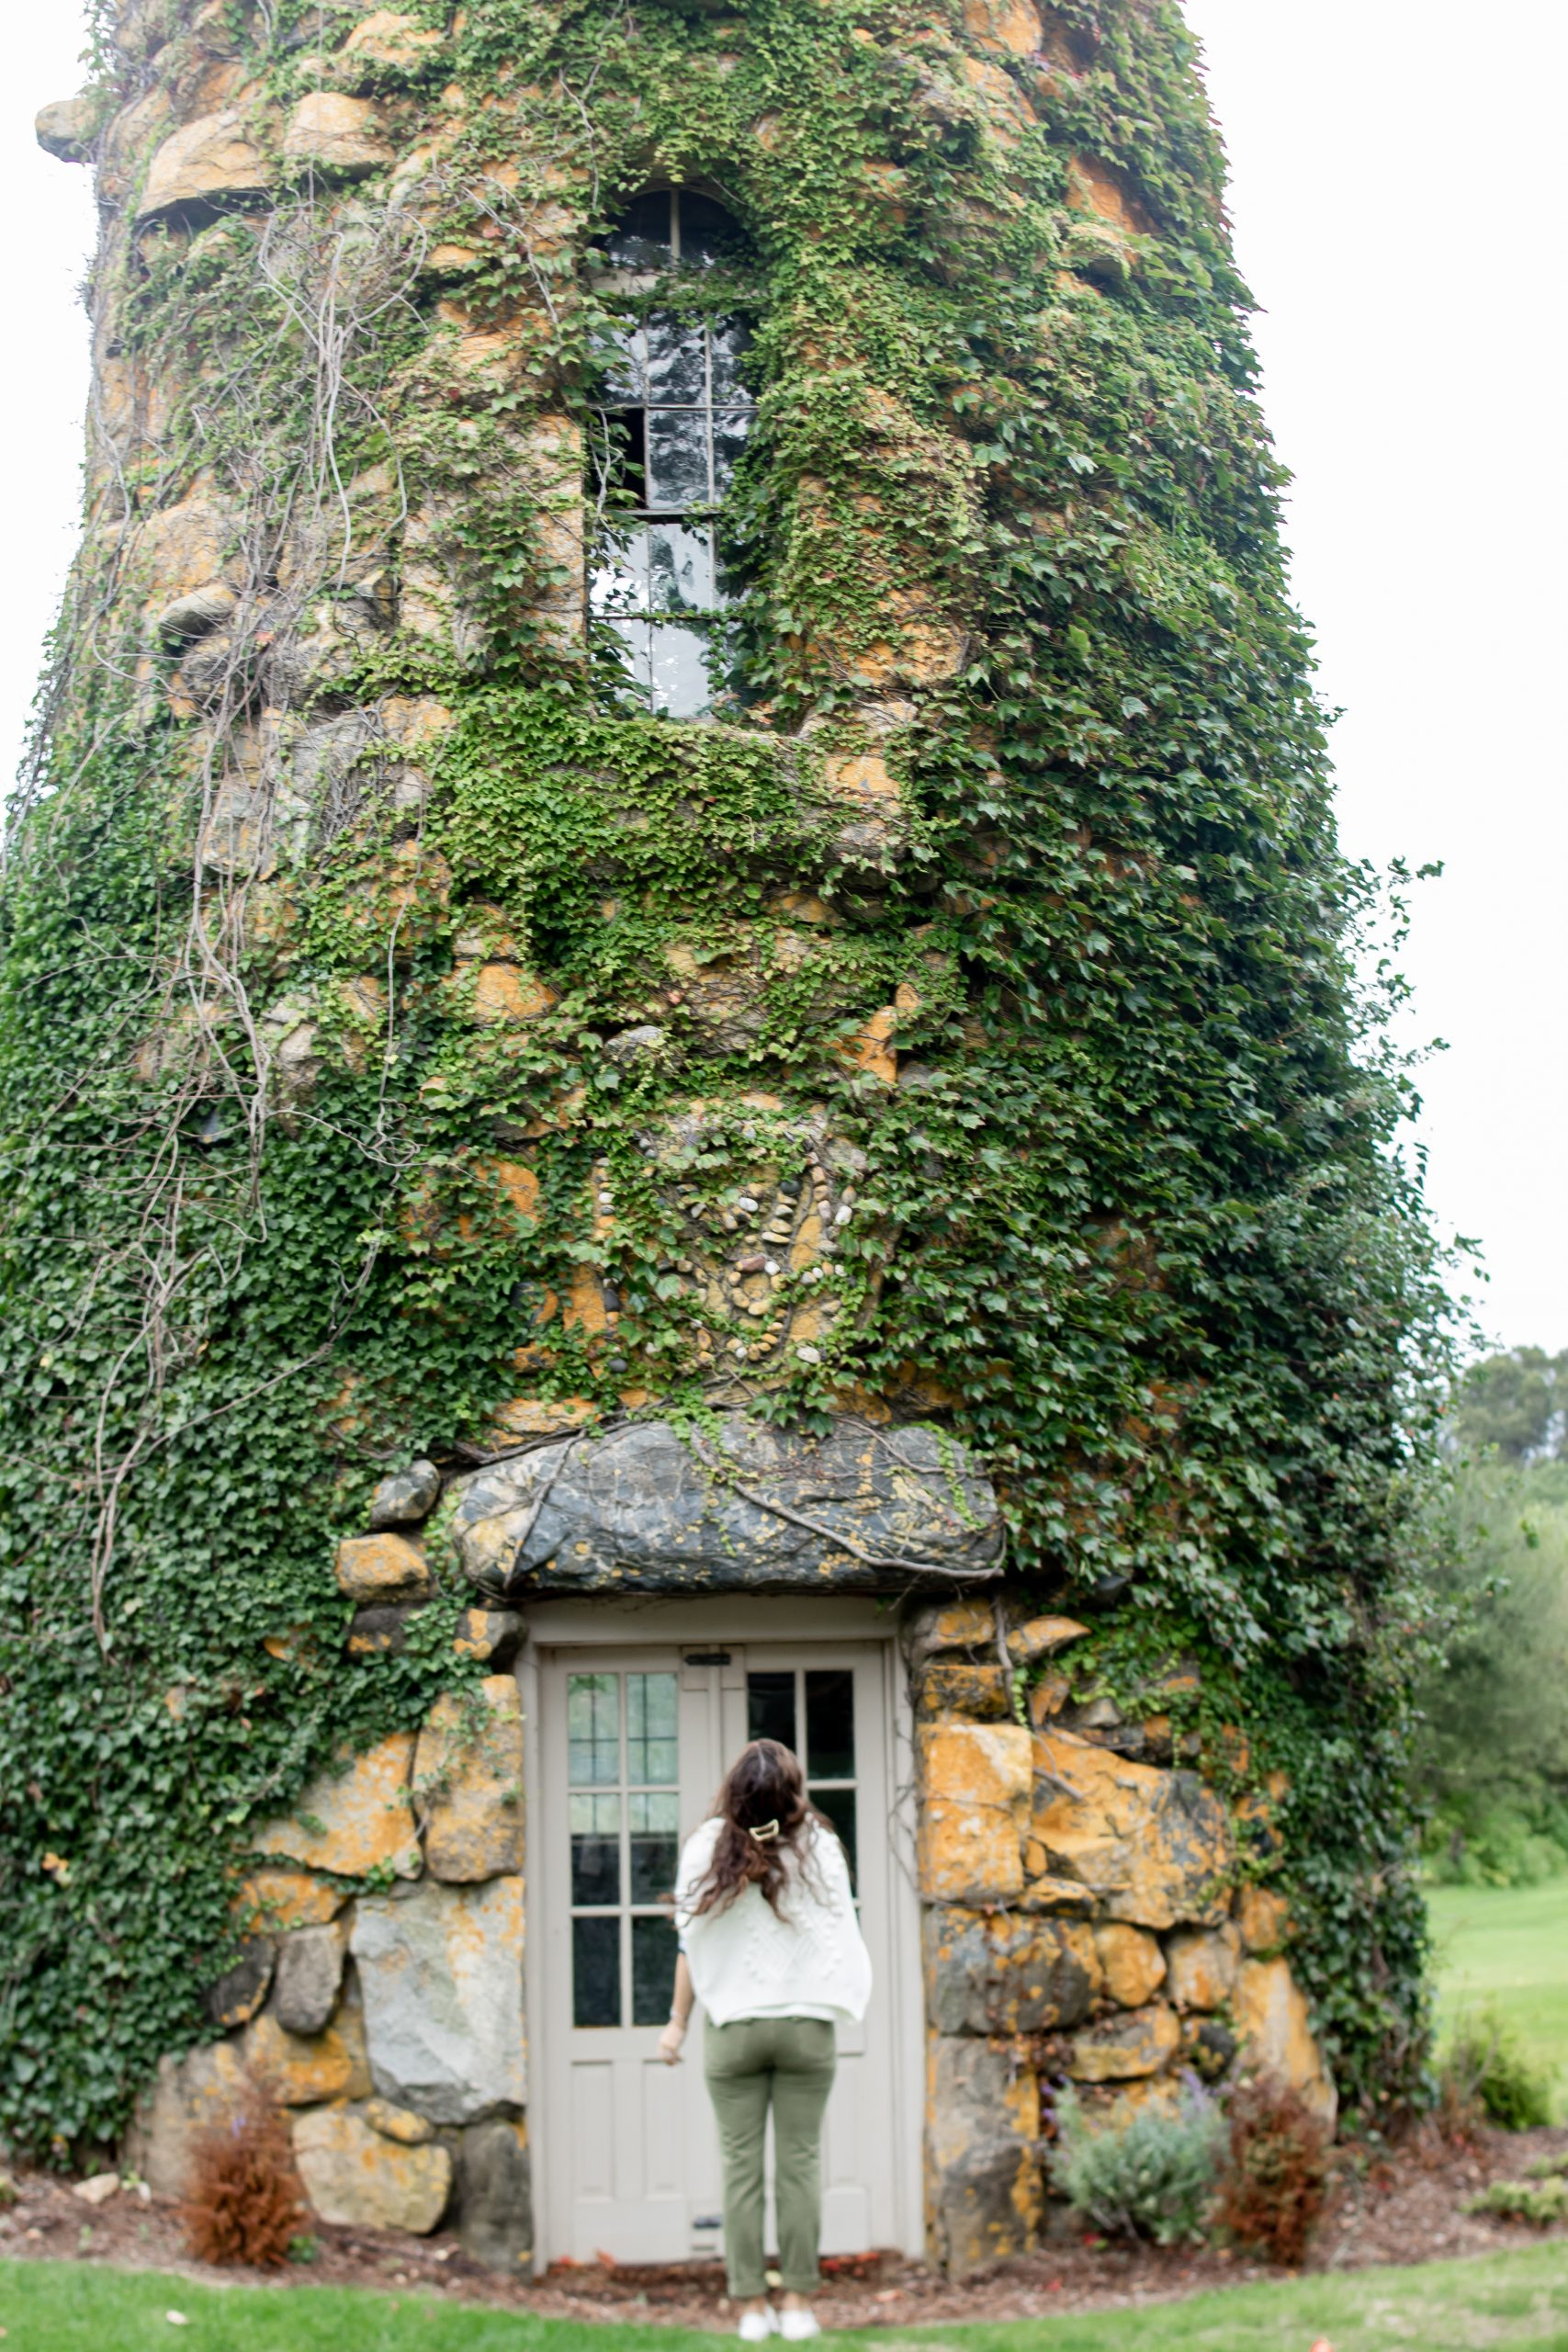 historical Vine covered water tower